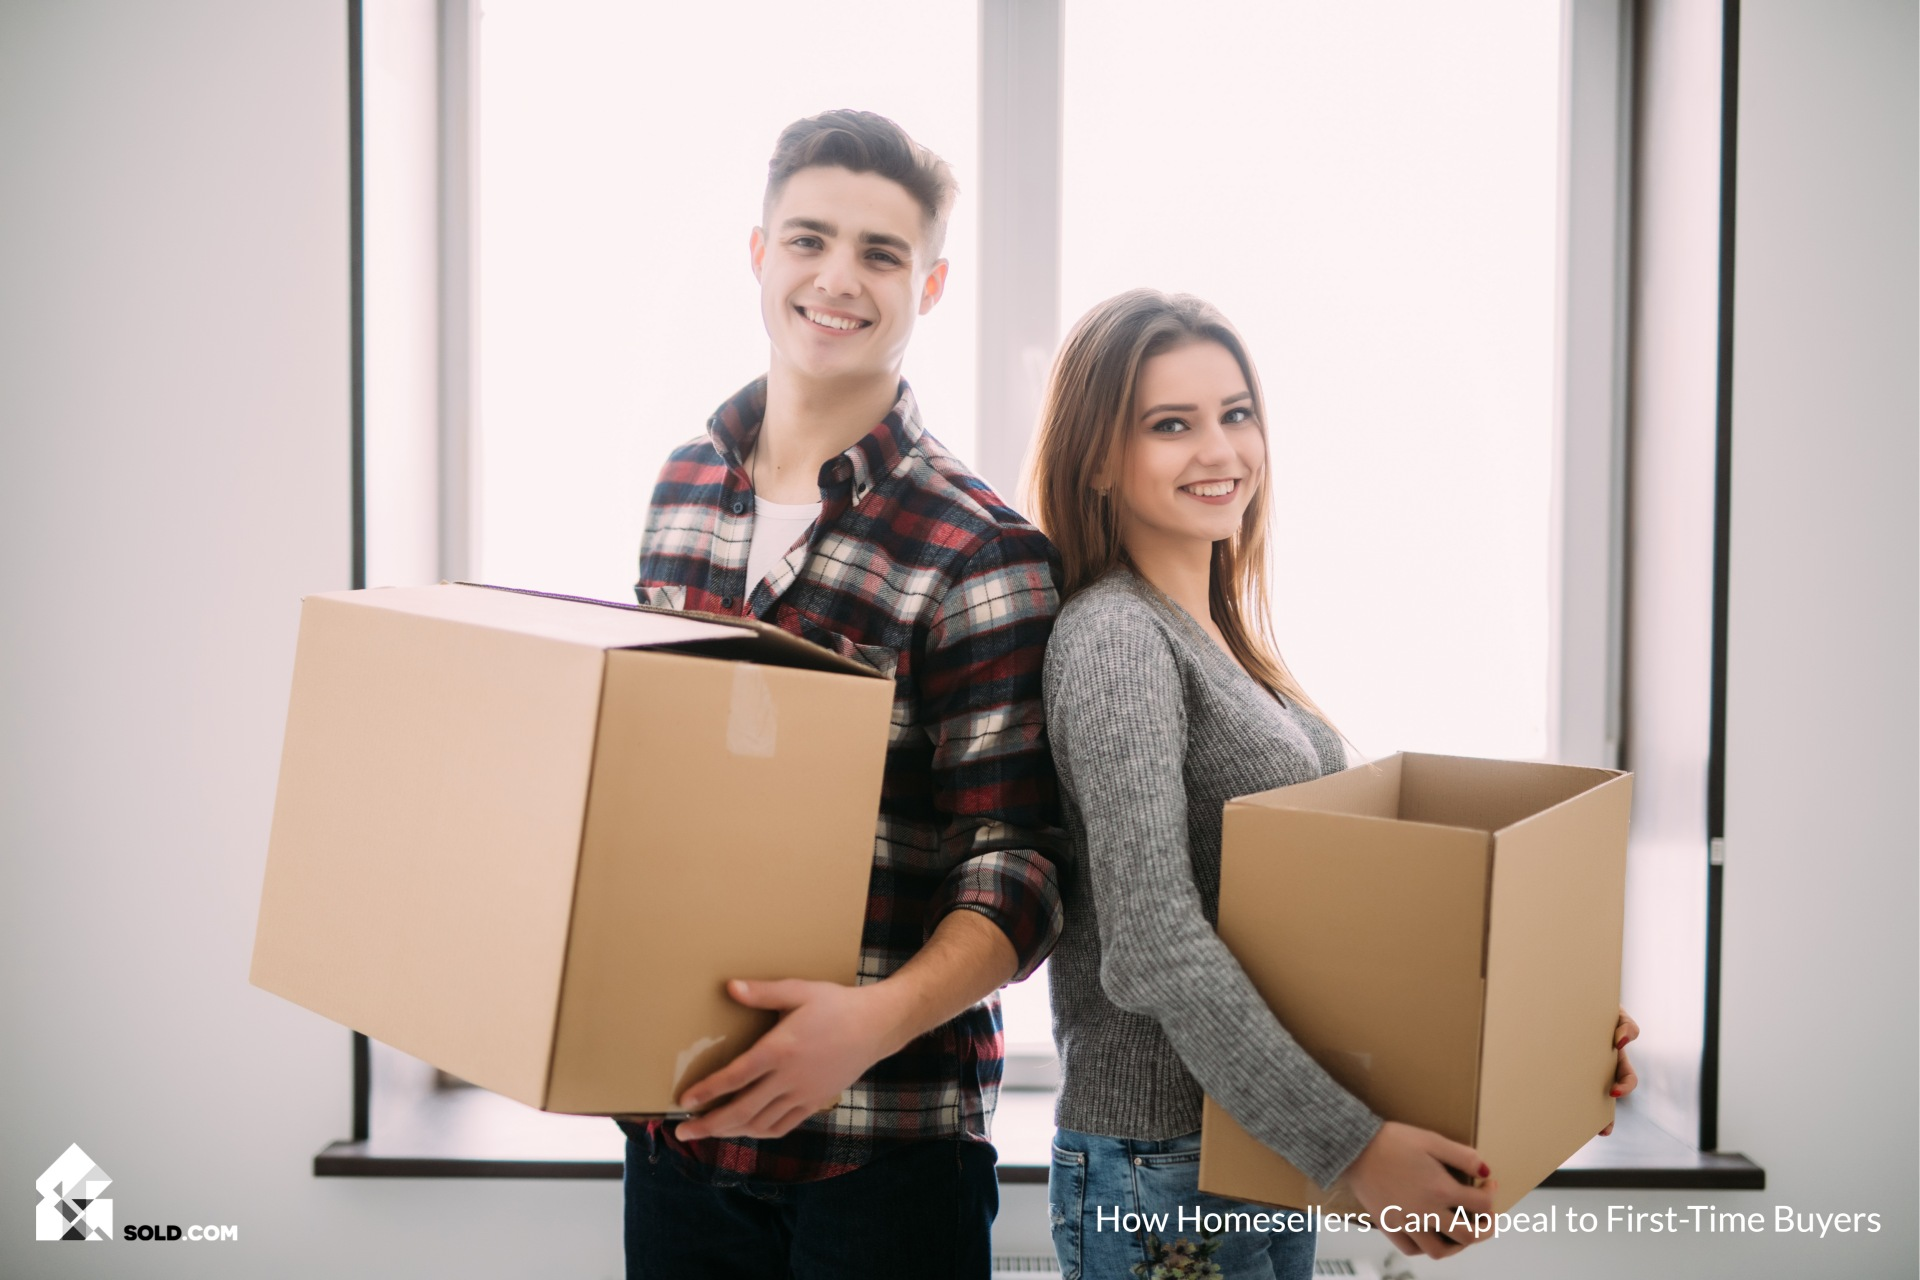 How Homesellers Can Appeal to First-Time Buyers